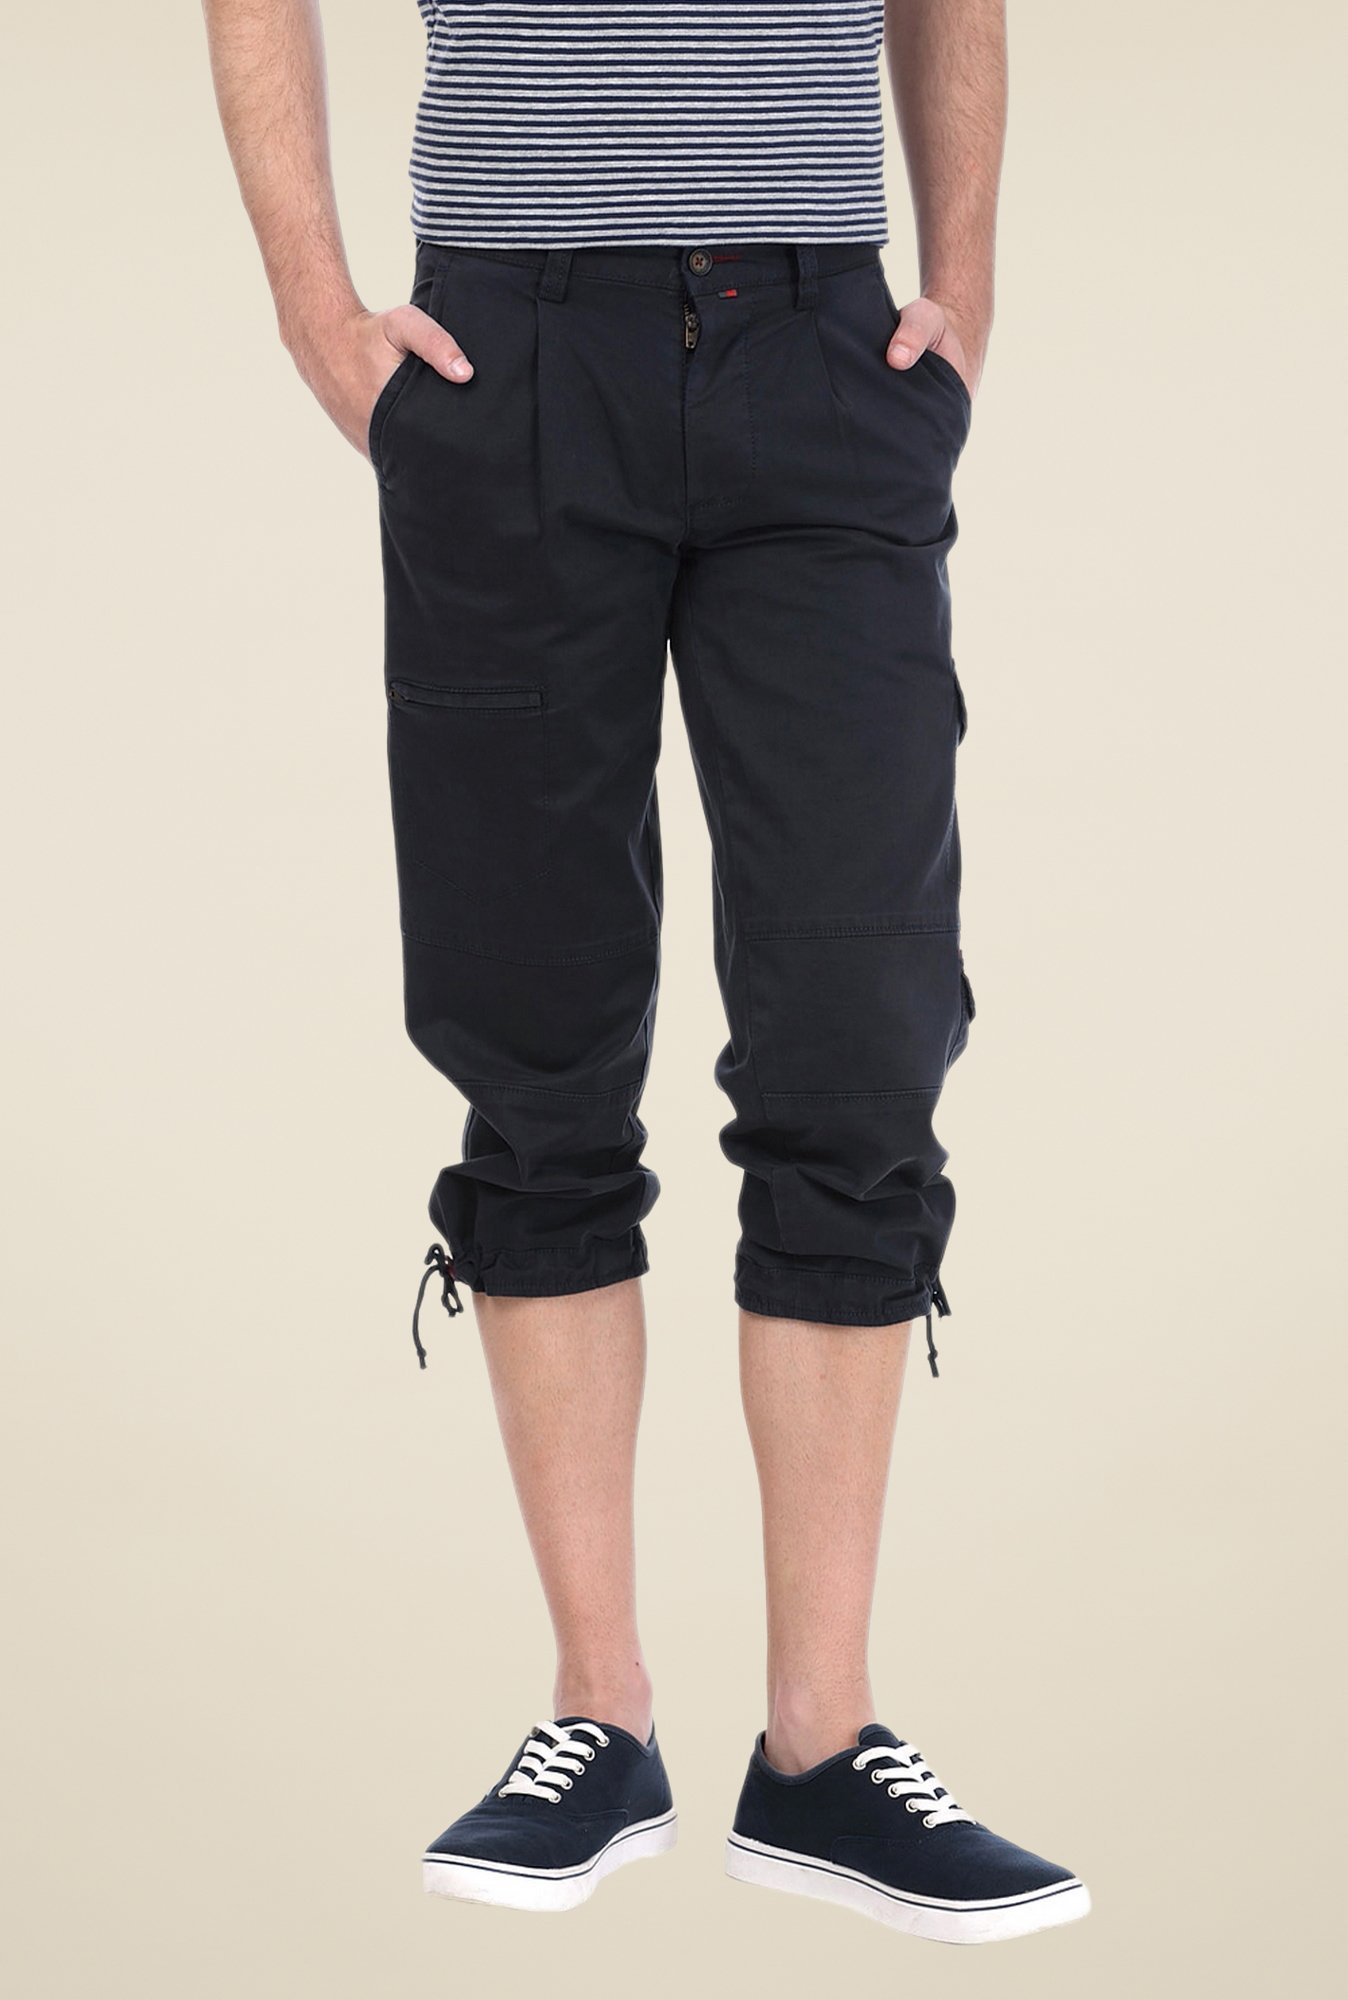 Basics Black Solid Shorts